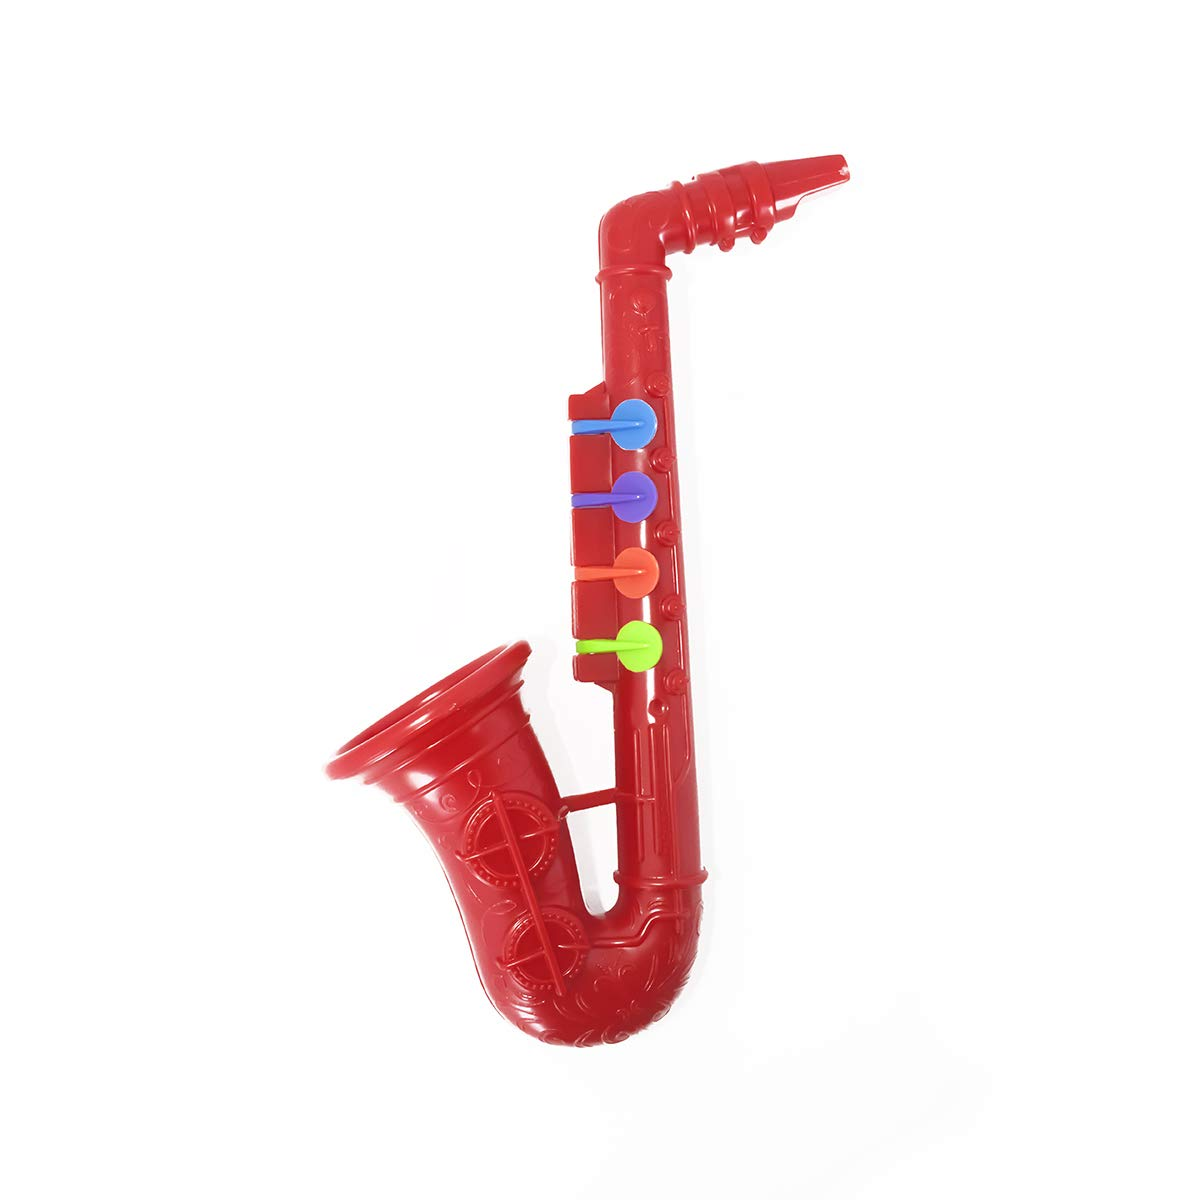 GROSSARTIG CBSKY Plastic Saxophone Educational and Professional with 4 Colored Keys, Great Gift, Musical Toys for Kids/Girls/Boys (Color : Red) by GROSSARTIG